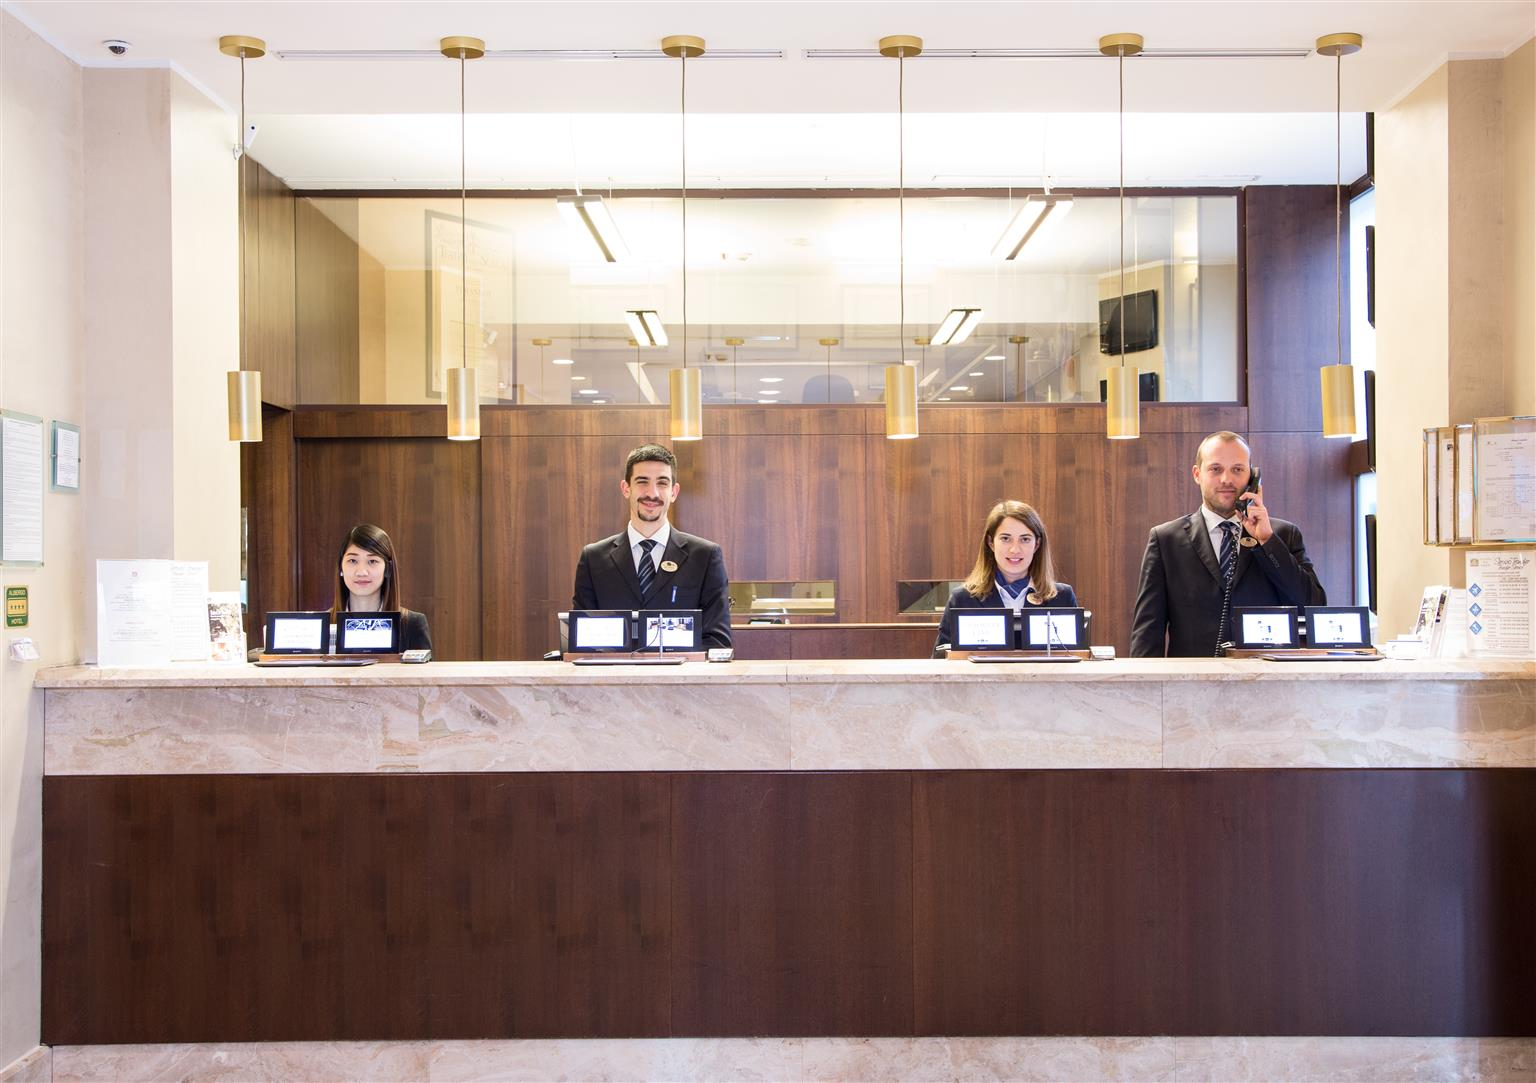 Best western plus hotel galles for Hotel galles milano